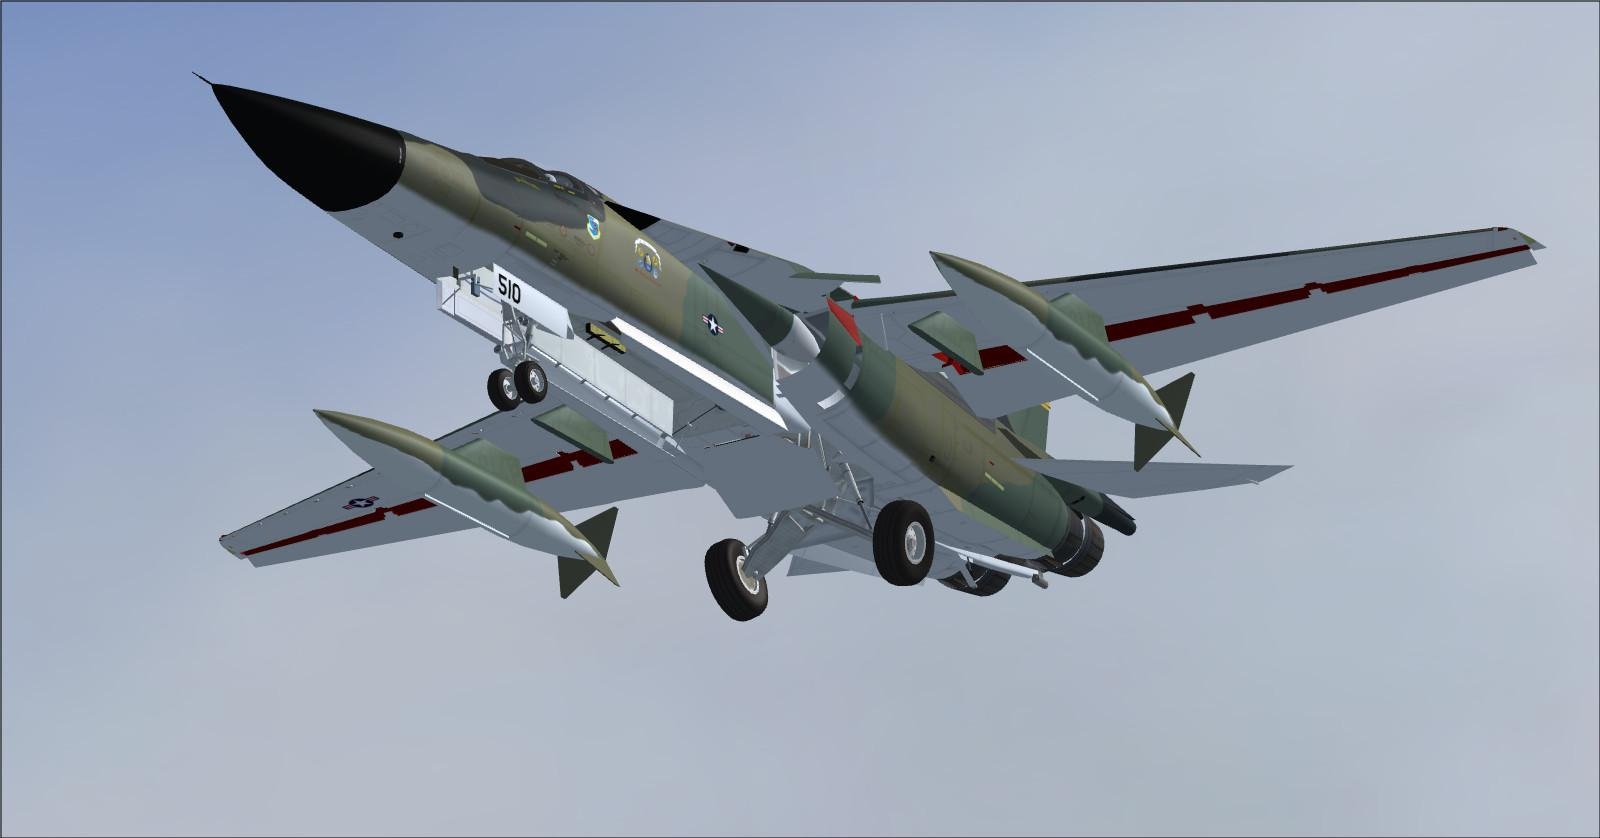 DOWNLOAD SHRS F-111 Aardvark FSX SP2 & P3D - Rikoooo